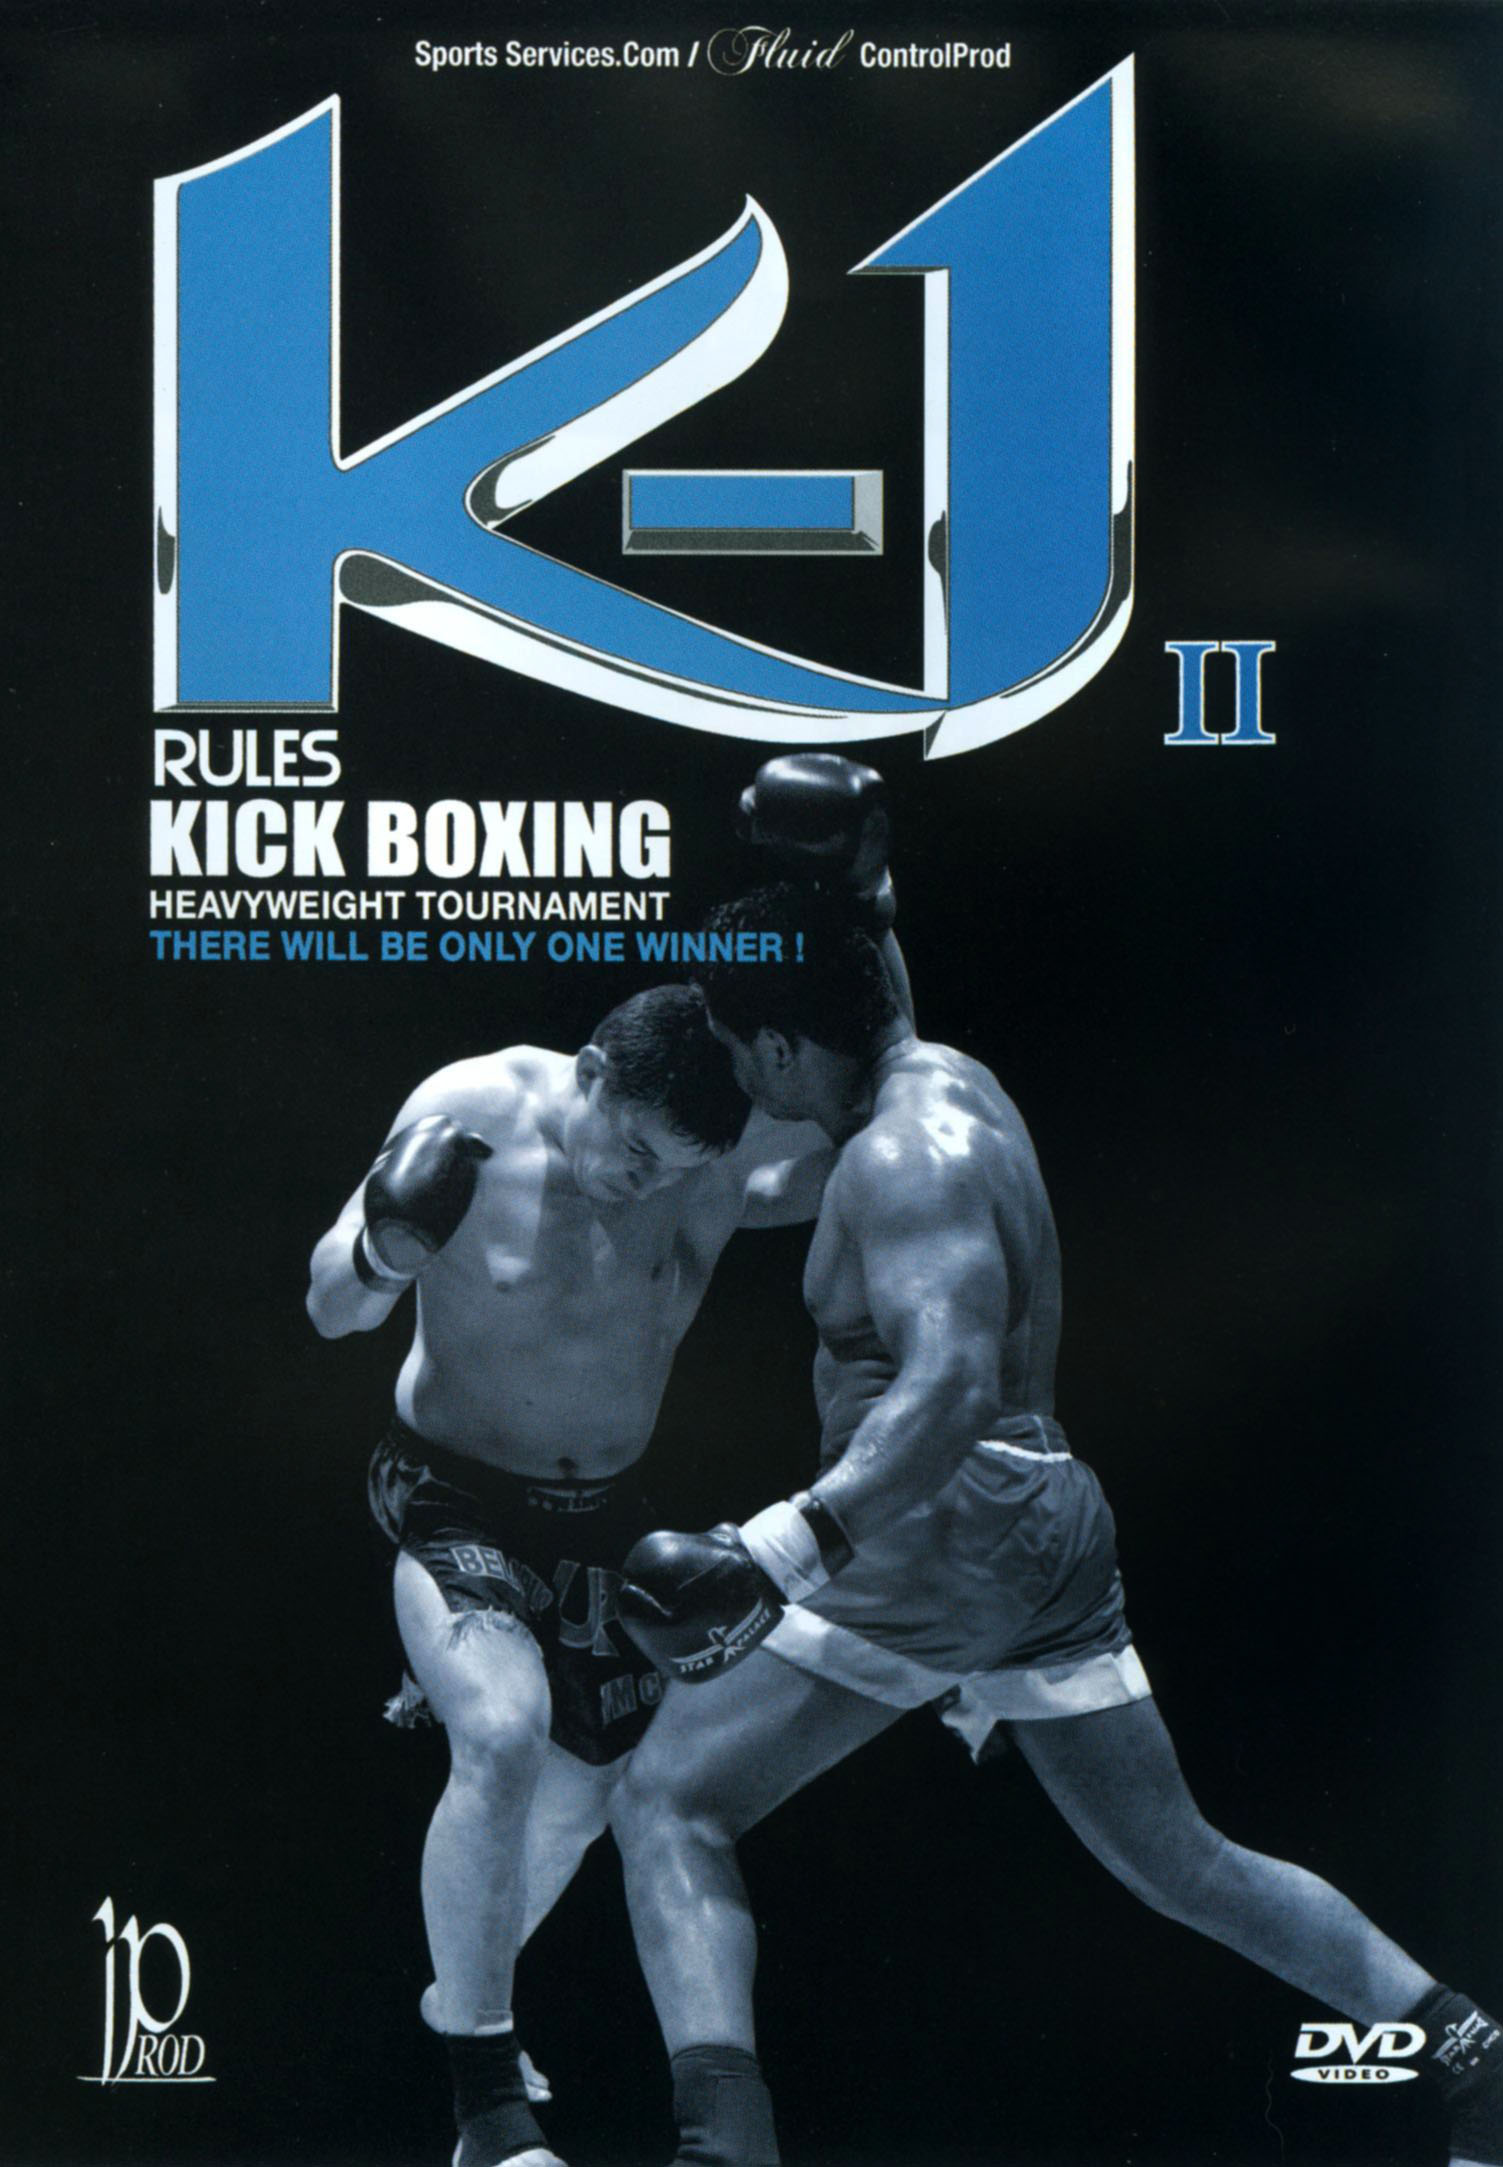 K-1 II: Rules Kick Boxing - Heavyweight Tournament